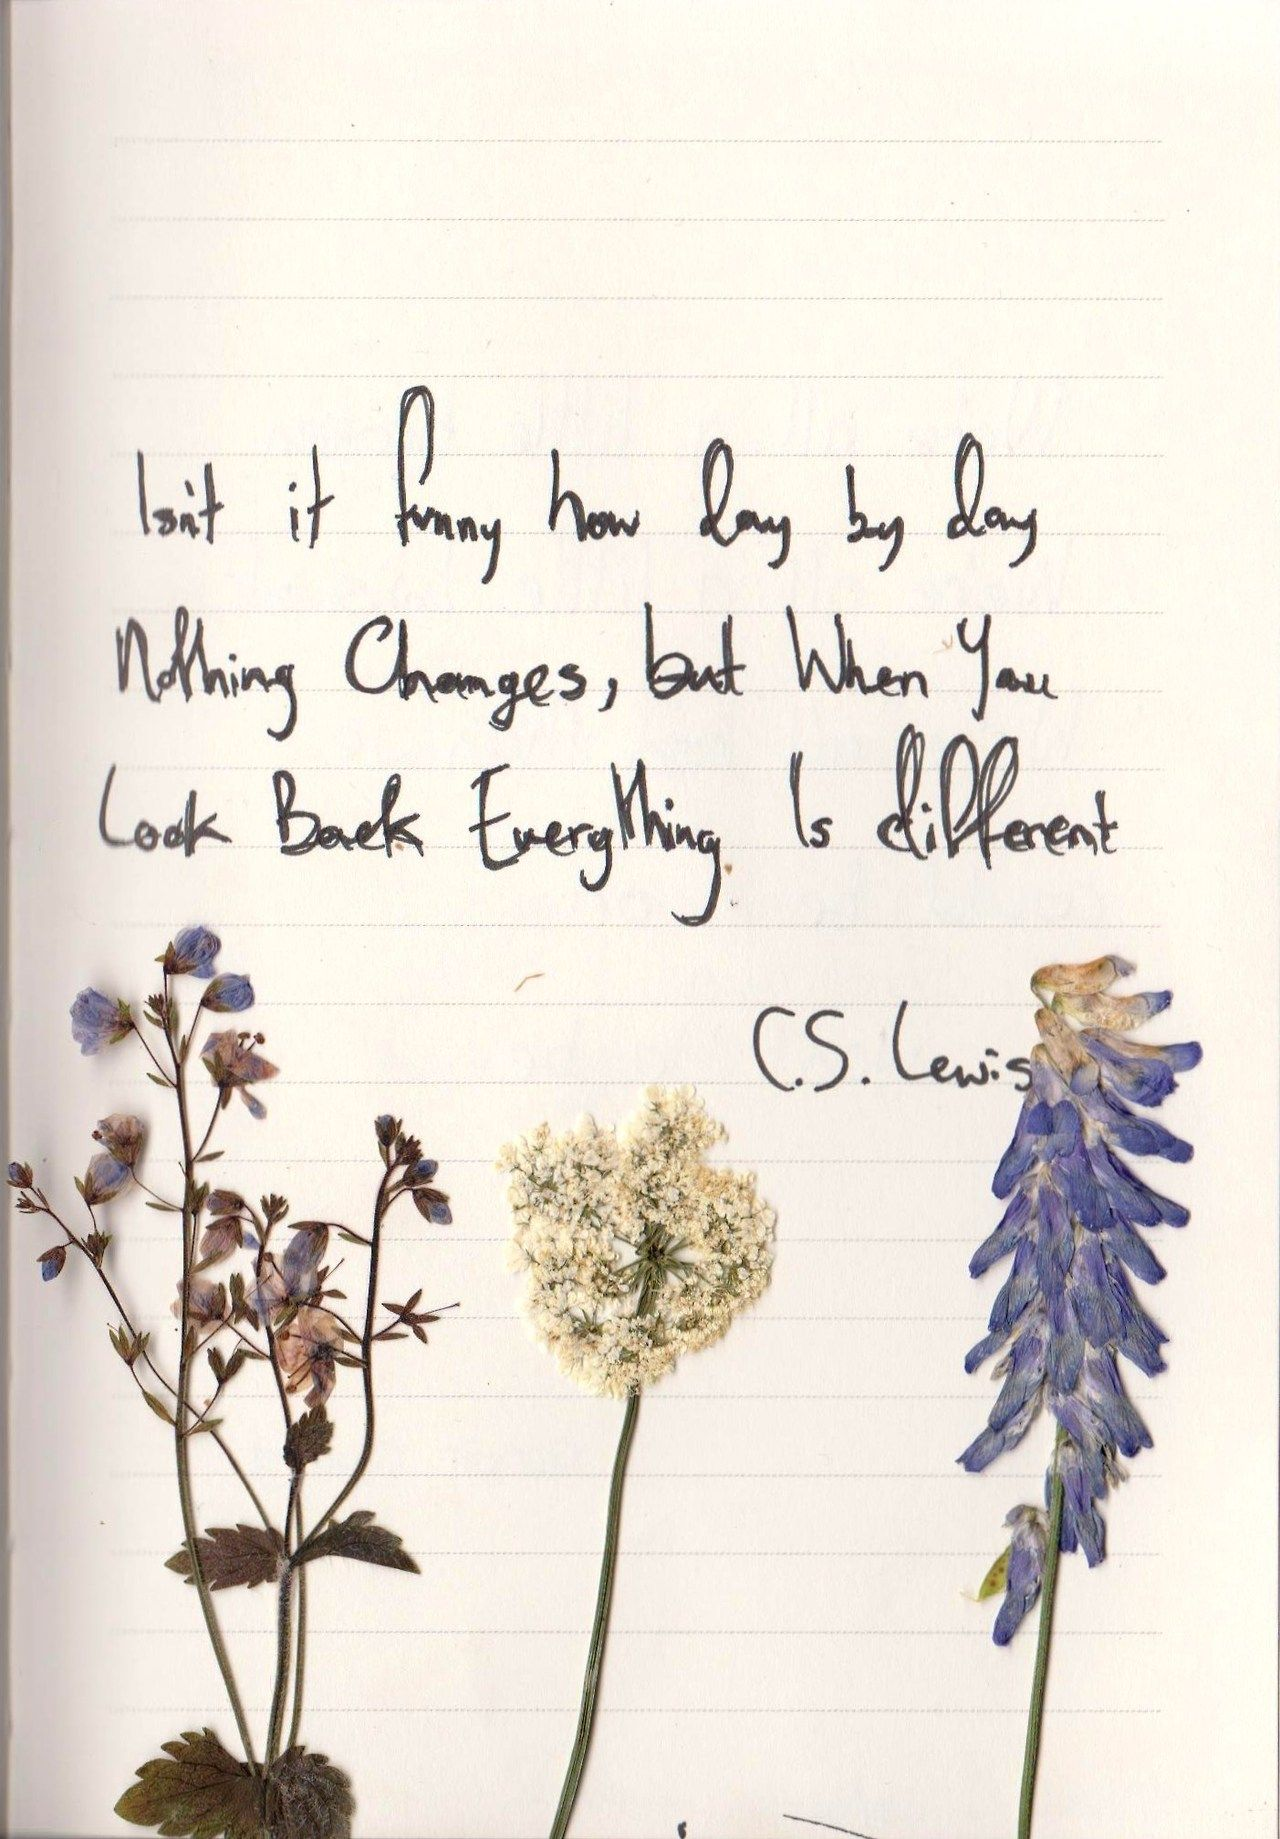 Isn T It Funny How Day By Day Nothing Changes But When You Look Back Everything Is Different C S Lewis Cheesy Quotes Pretty Words Sweet Quotes